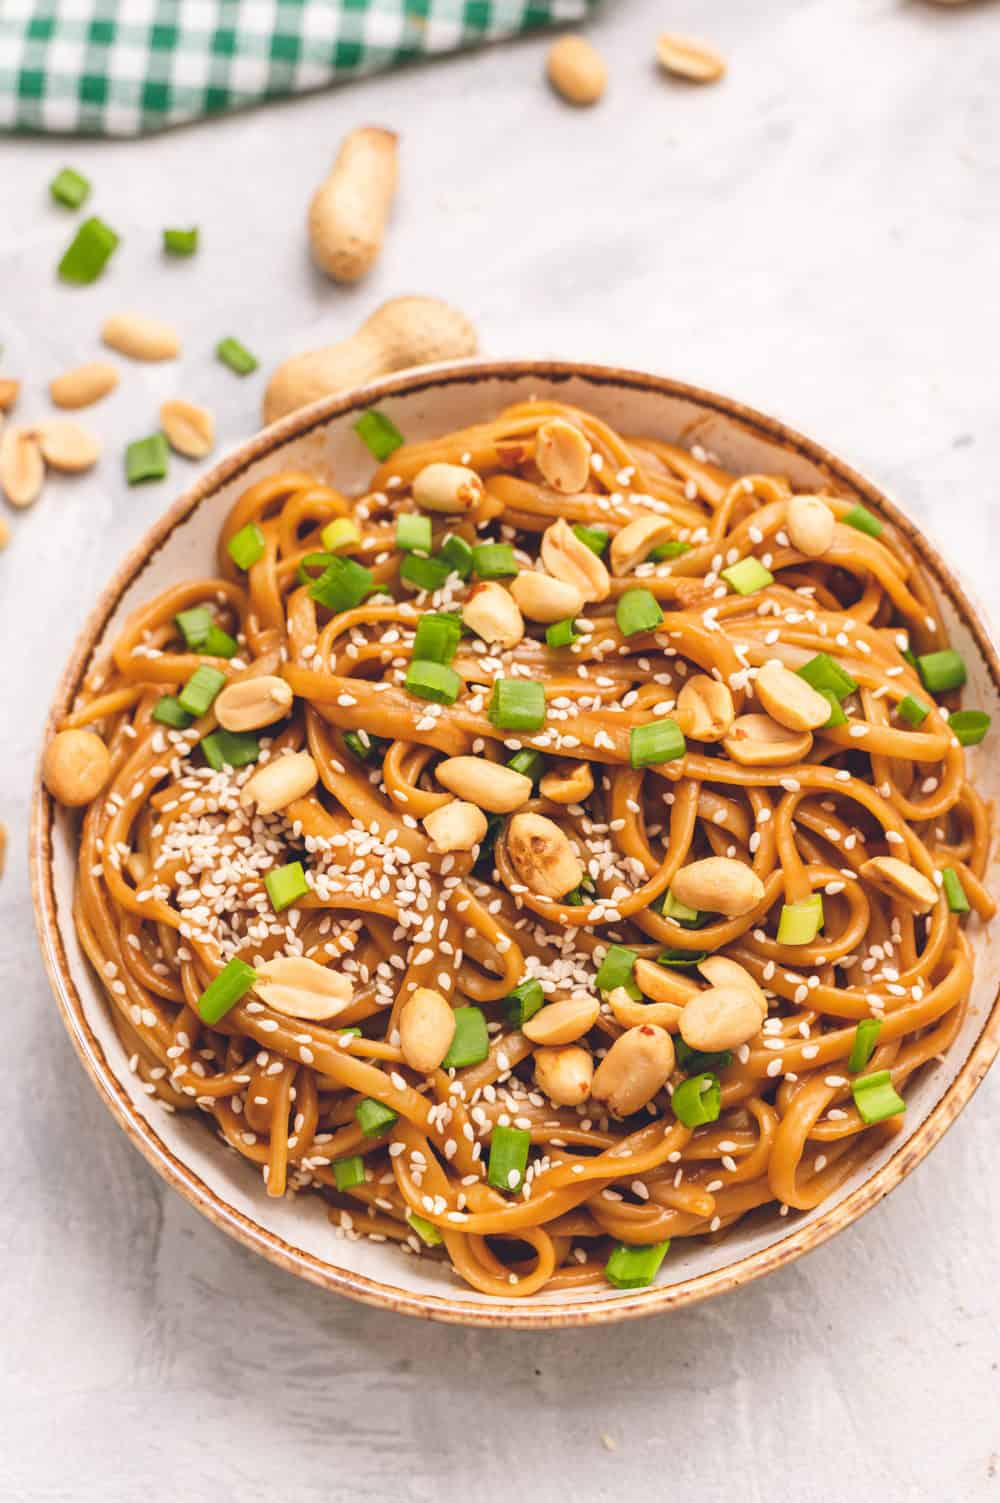 Thai peanut sesame noodles in a bowl with peanuts and onions garnished over top.